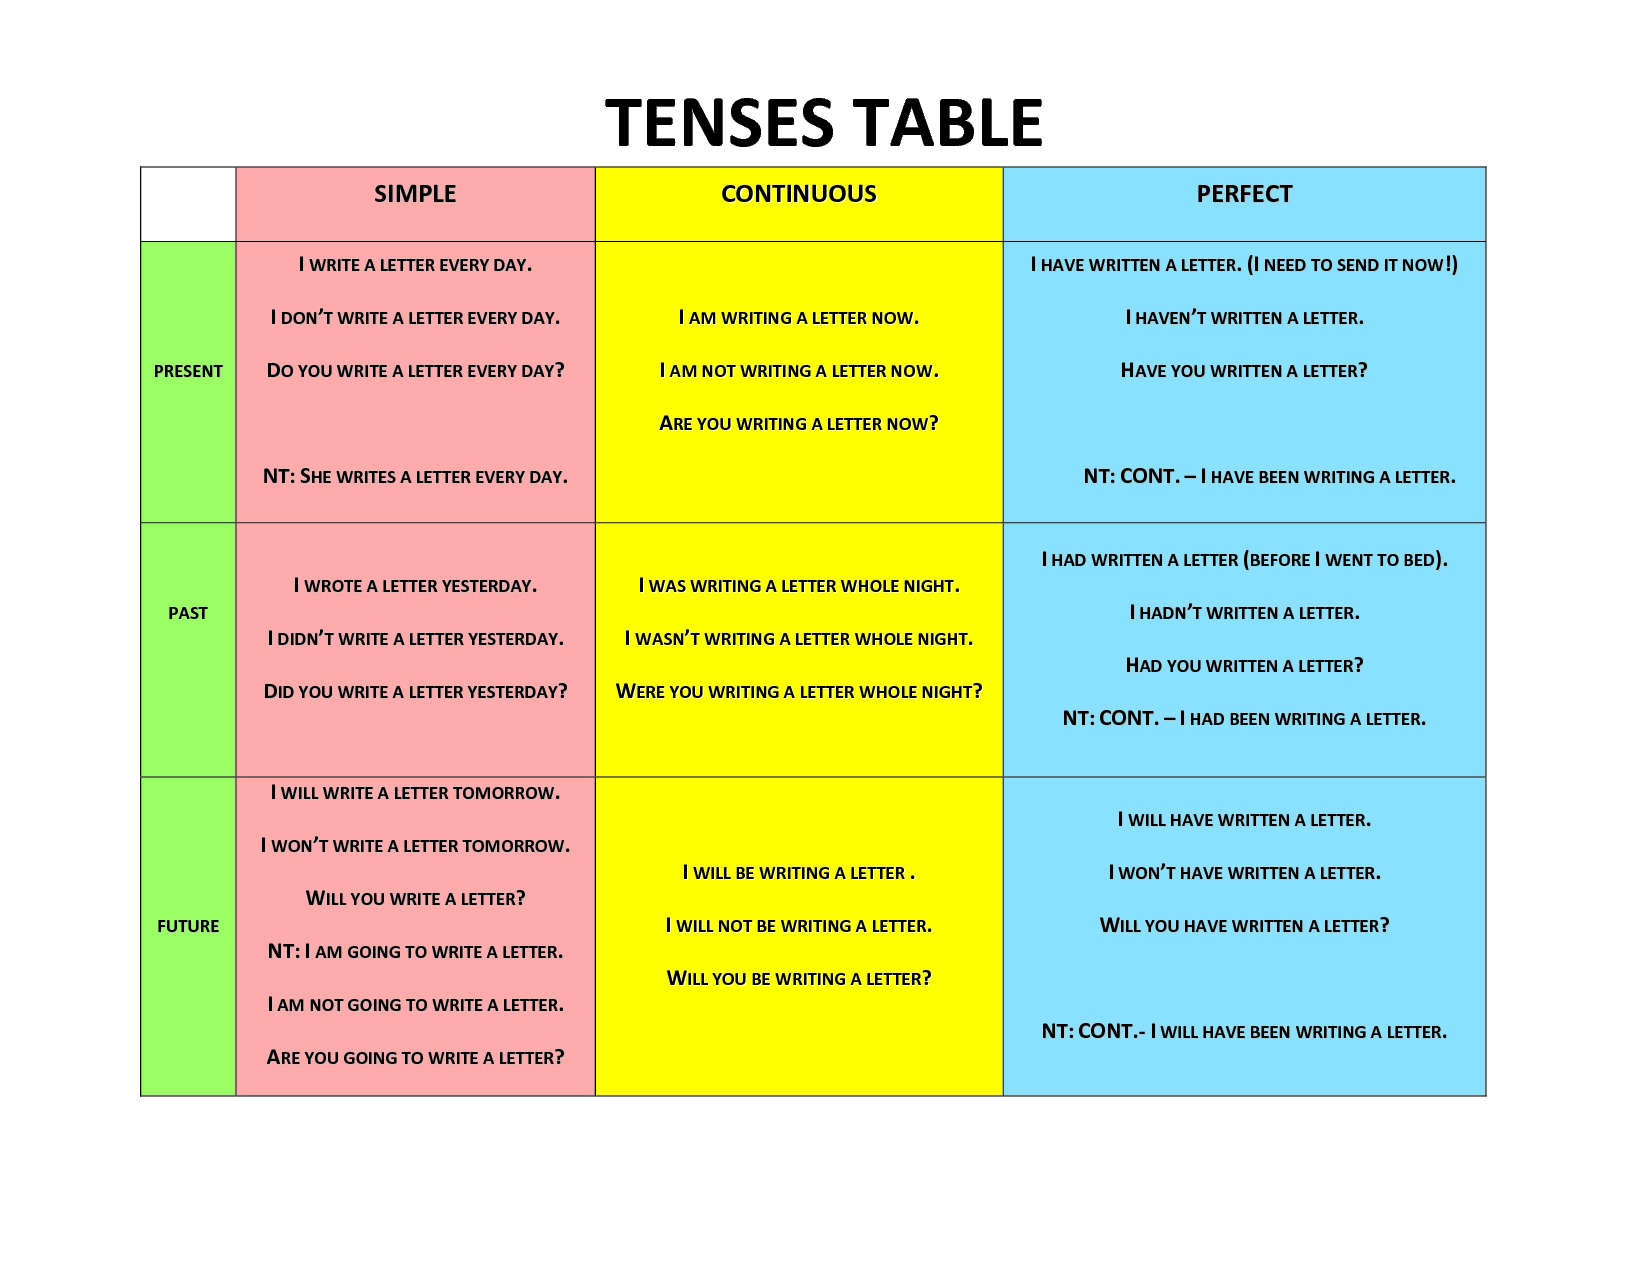 Tenses Tablo